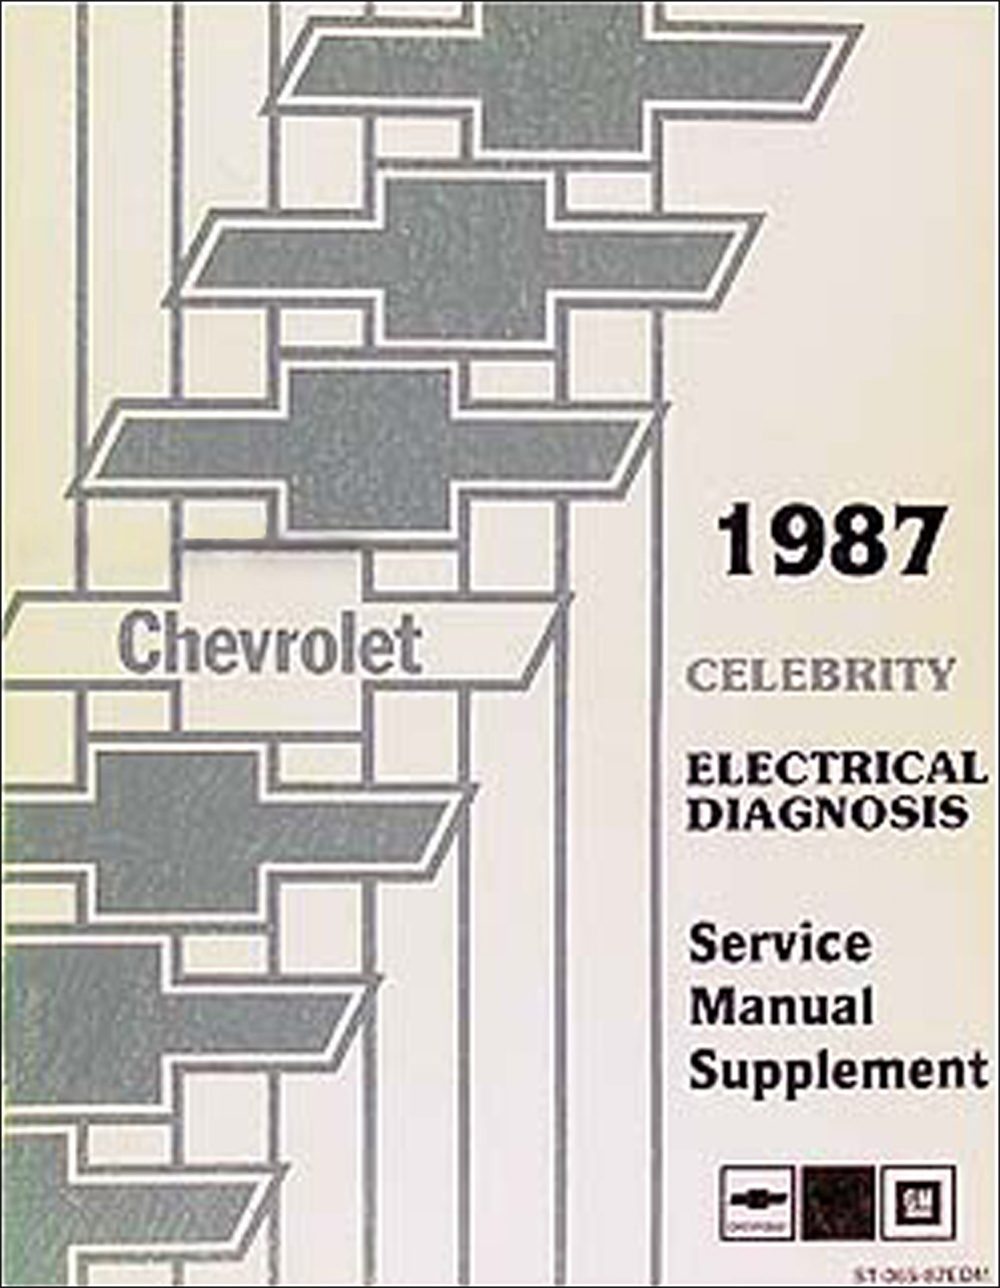 1987 Chevy Celebrity Electrical Diagnosis Manual Original